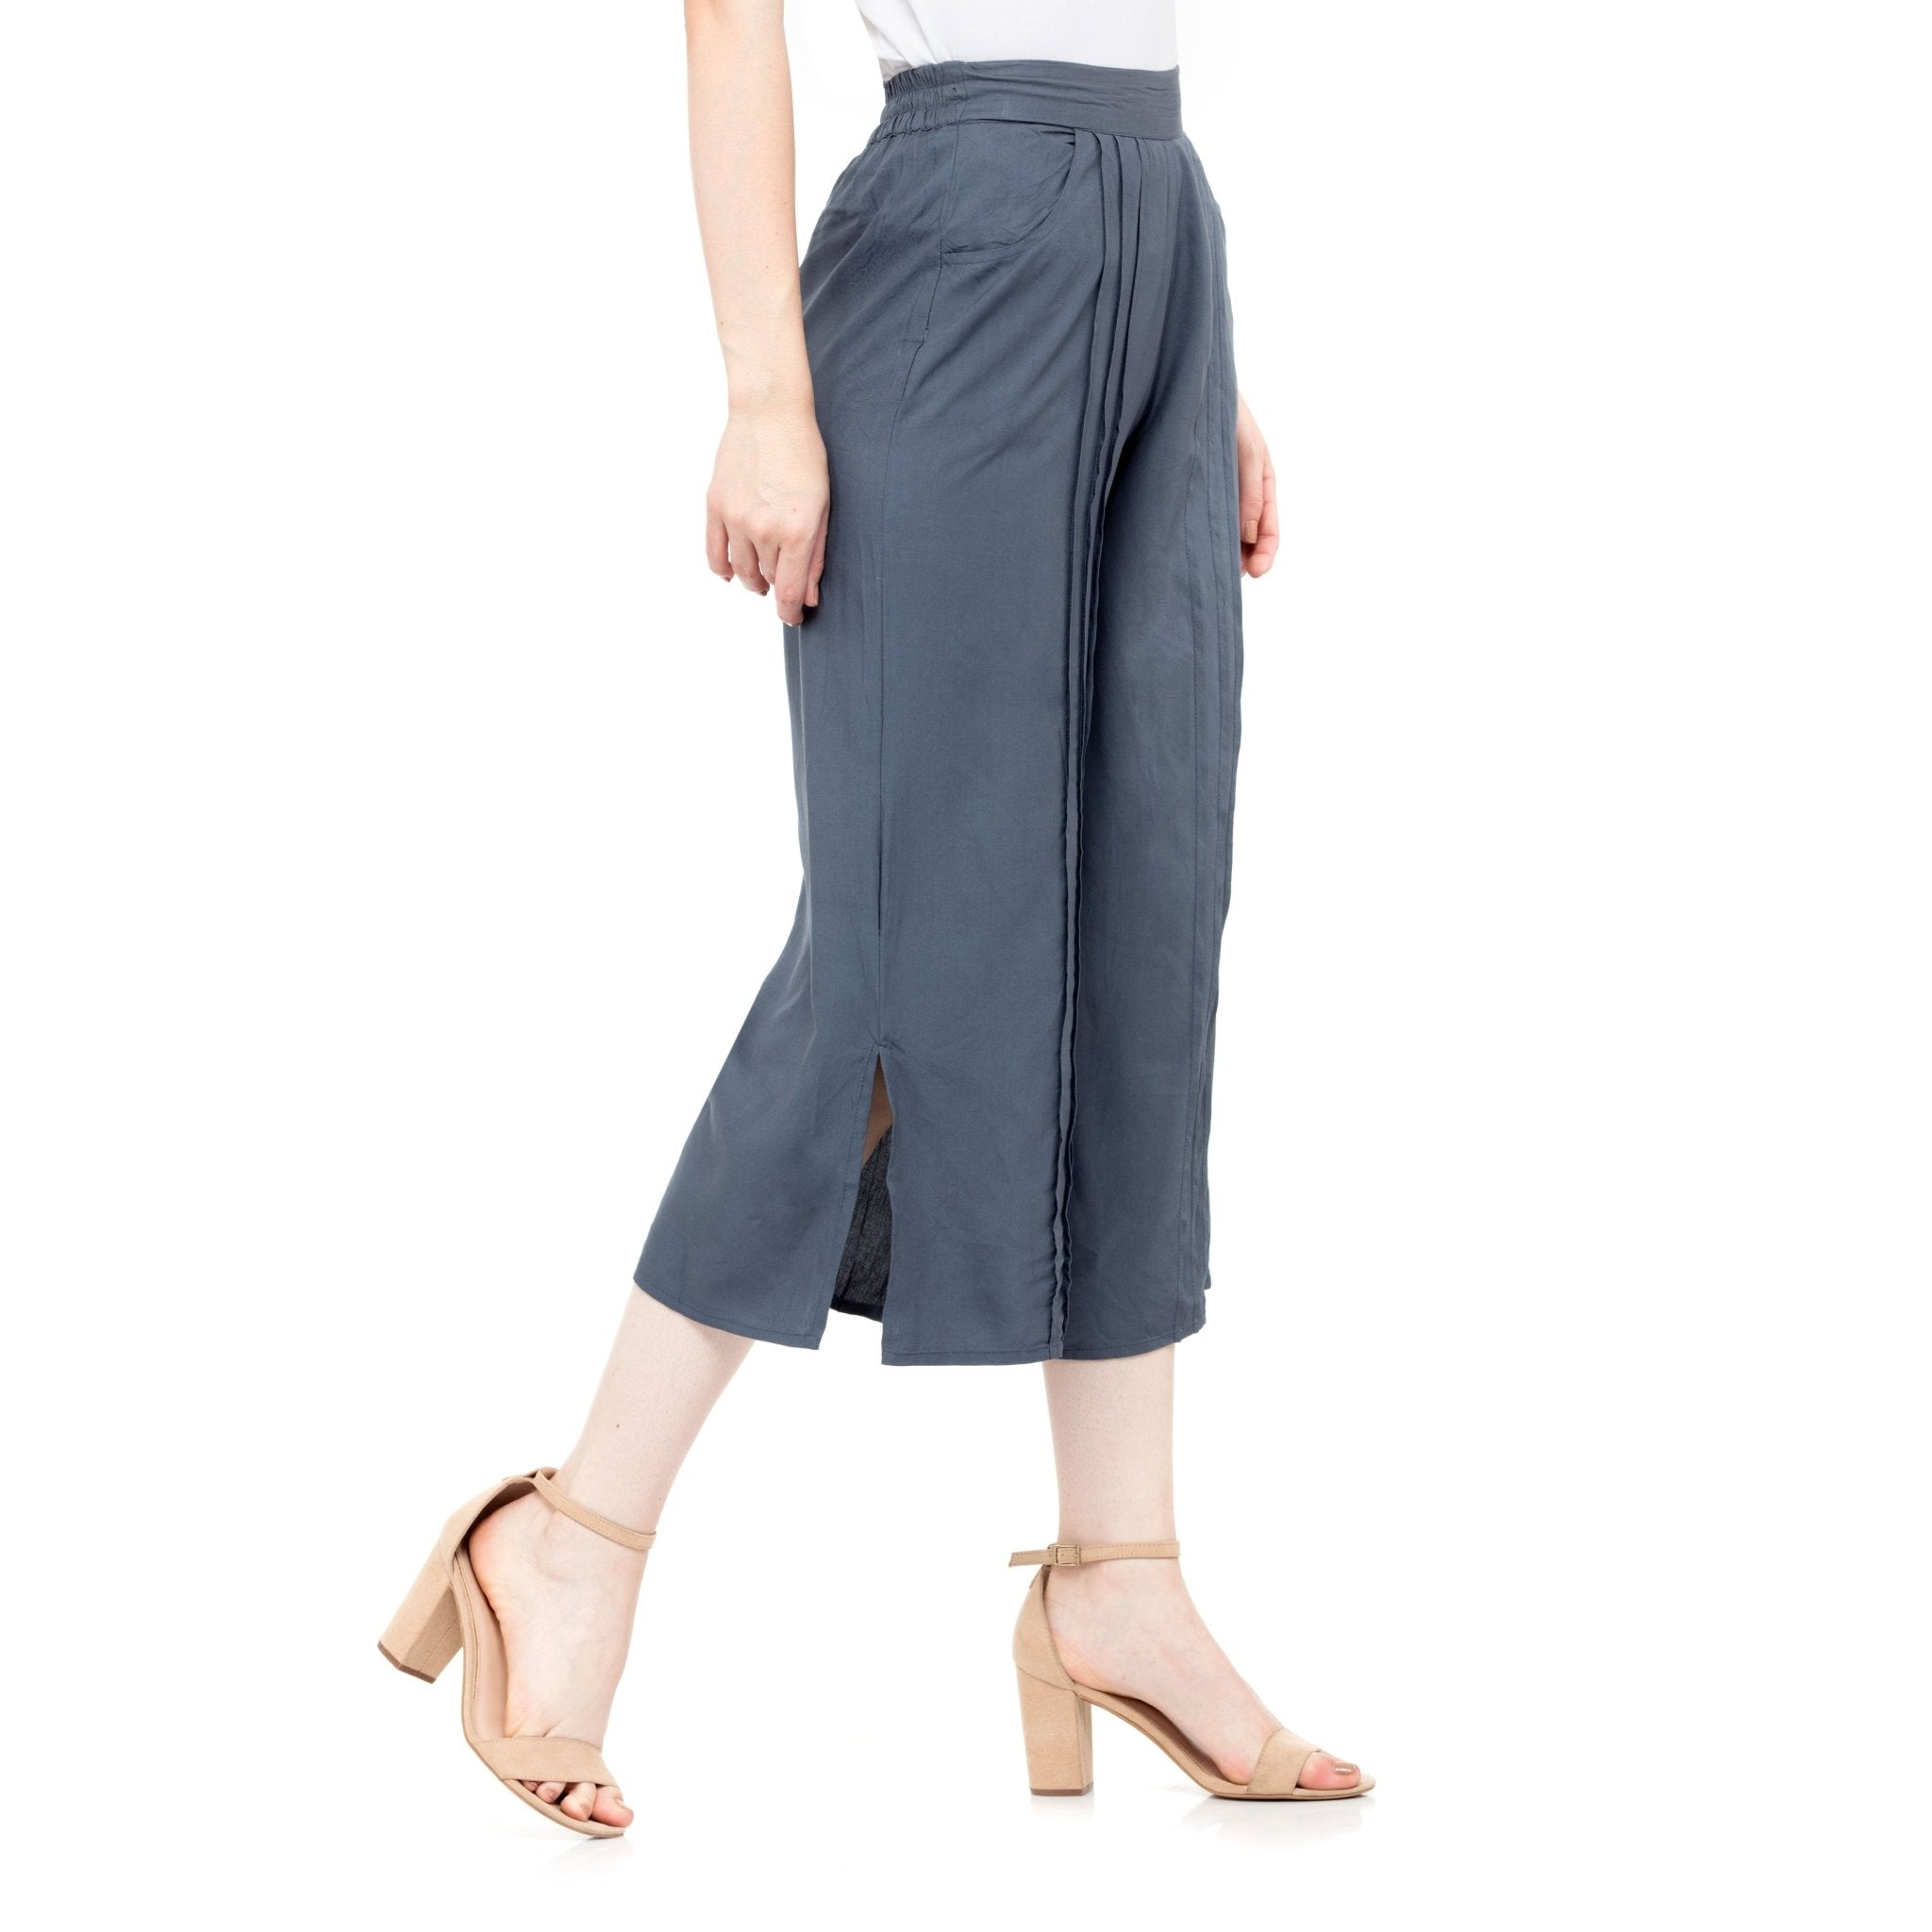 GRAY SOLID PLEATED CULOTTES - ZOMO